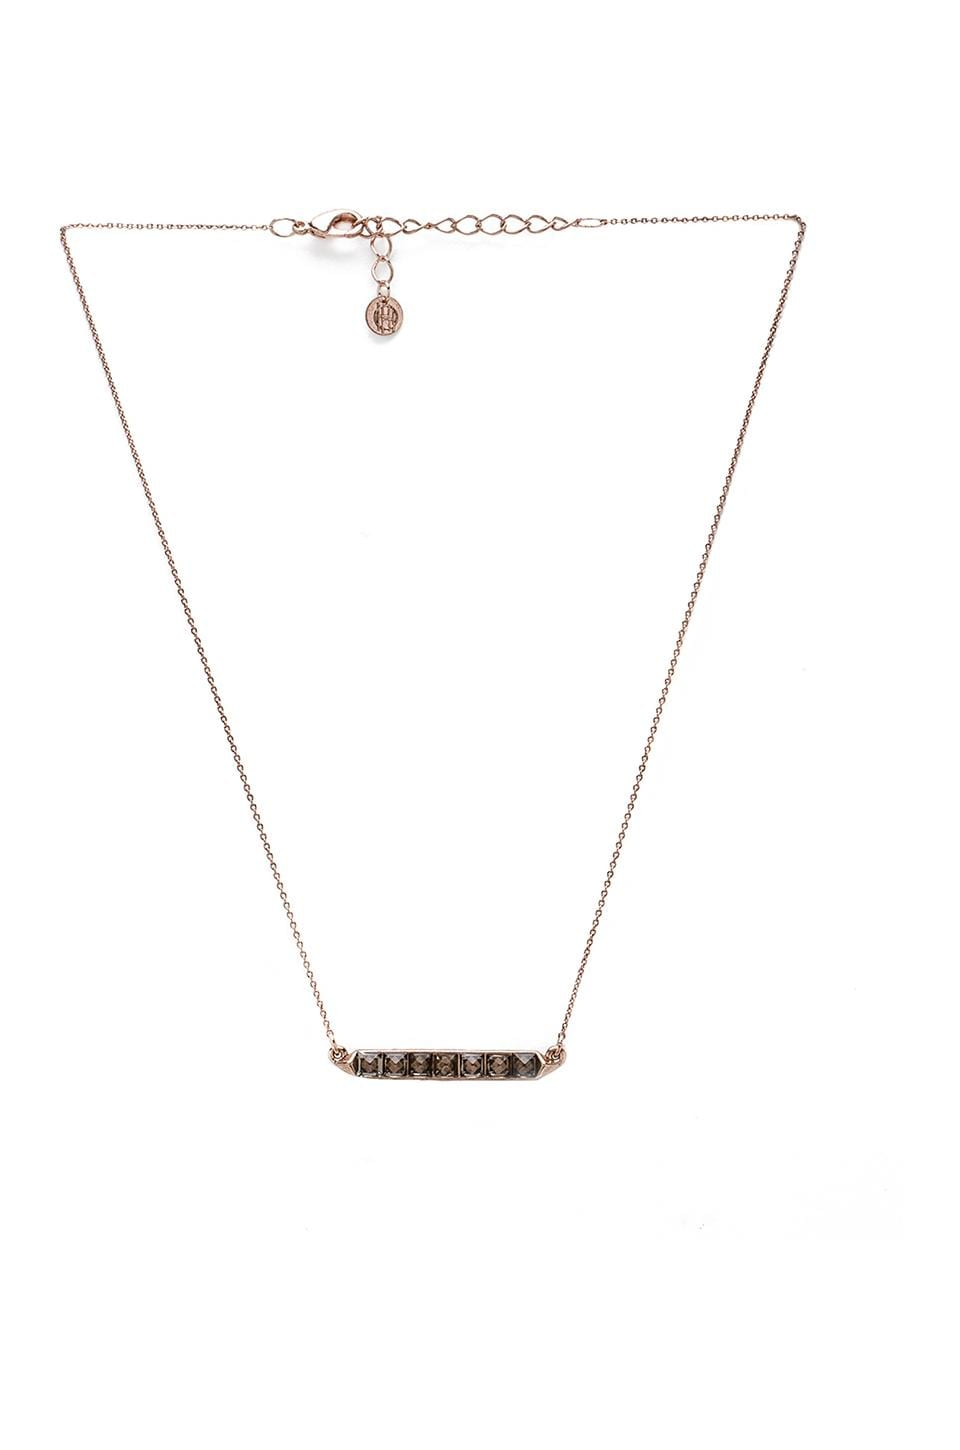 House of Harlow 1960 House of Harlow Seer's Necklace in Rose Gold